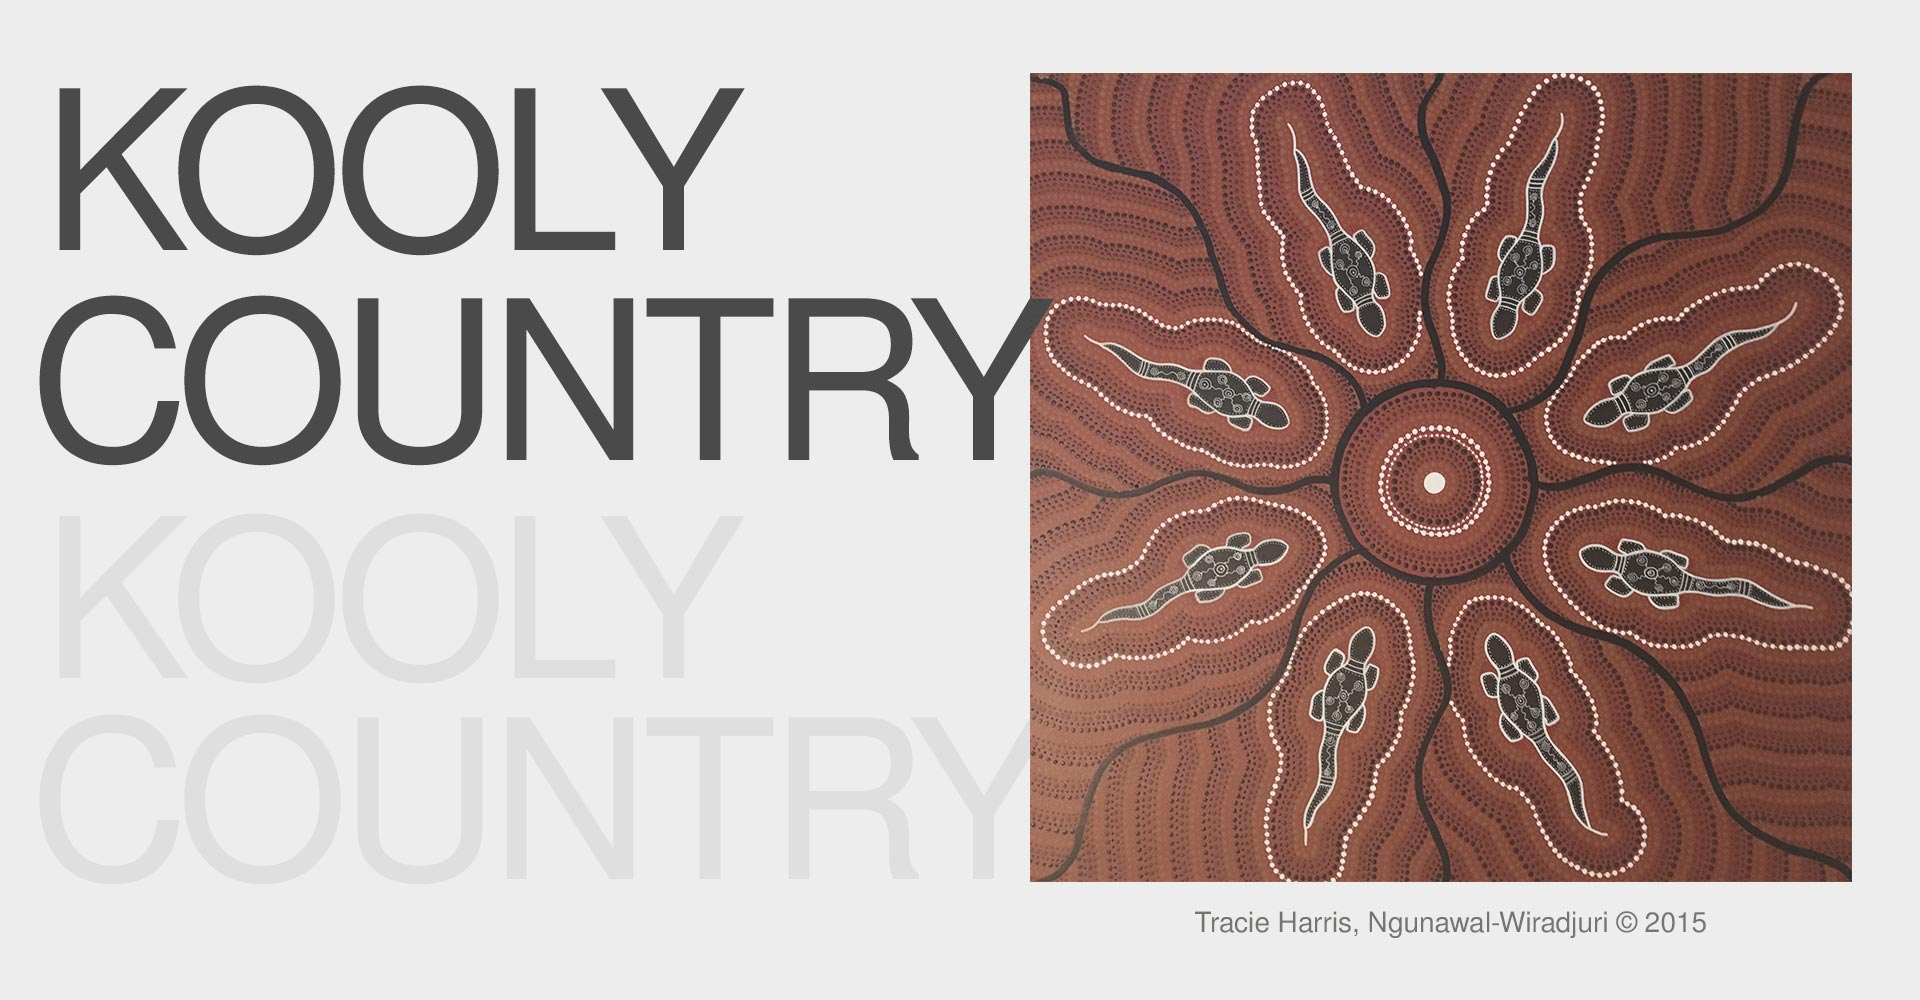 kooly-country_banner